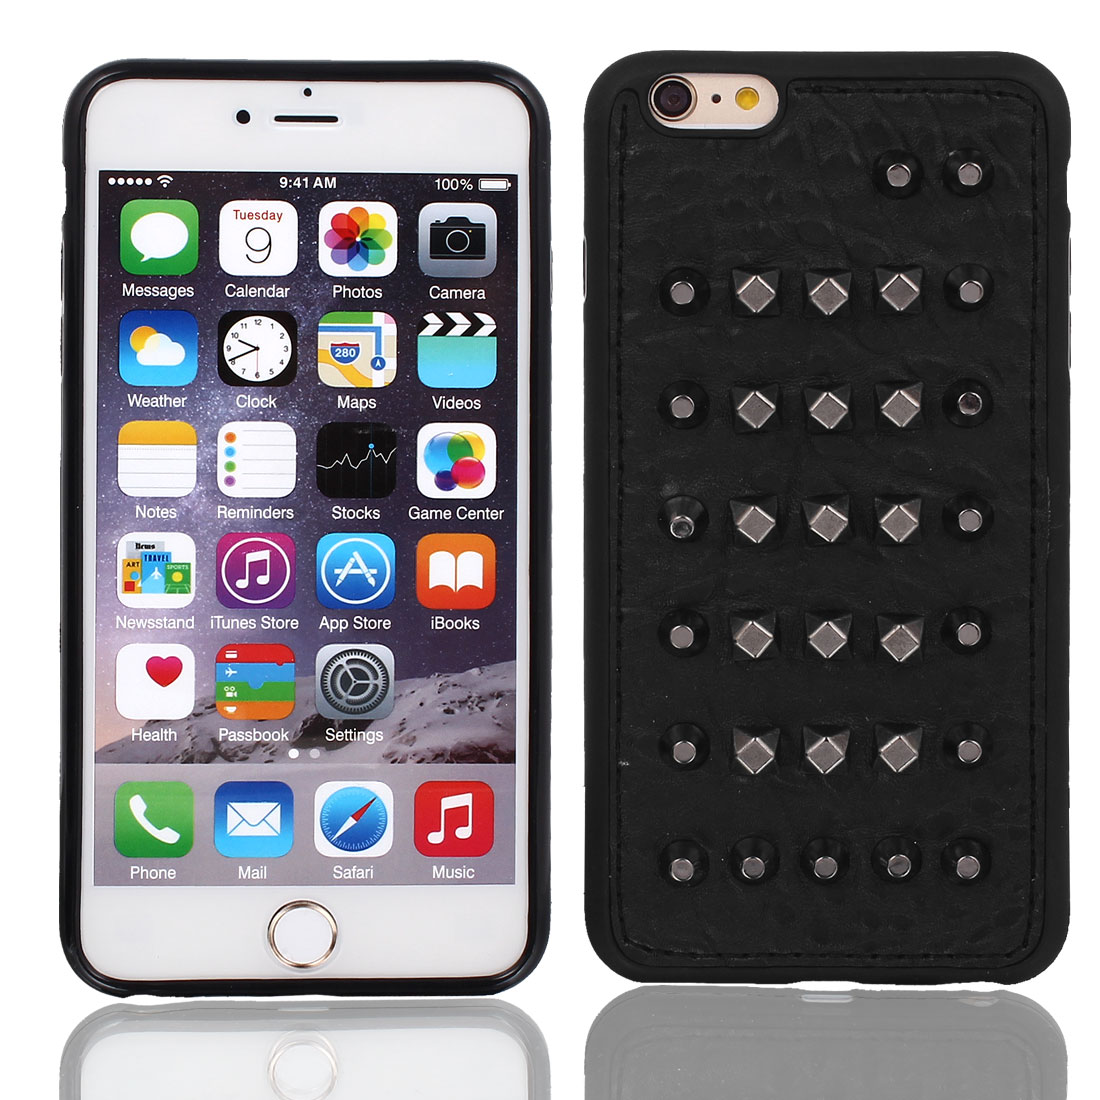 Faux Leather Protect Rugged Cover Case Black + Film for Apple iPhone 6 Plus 5.5""